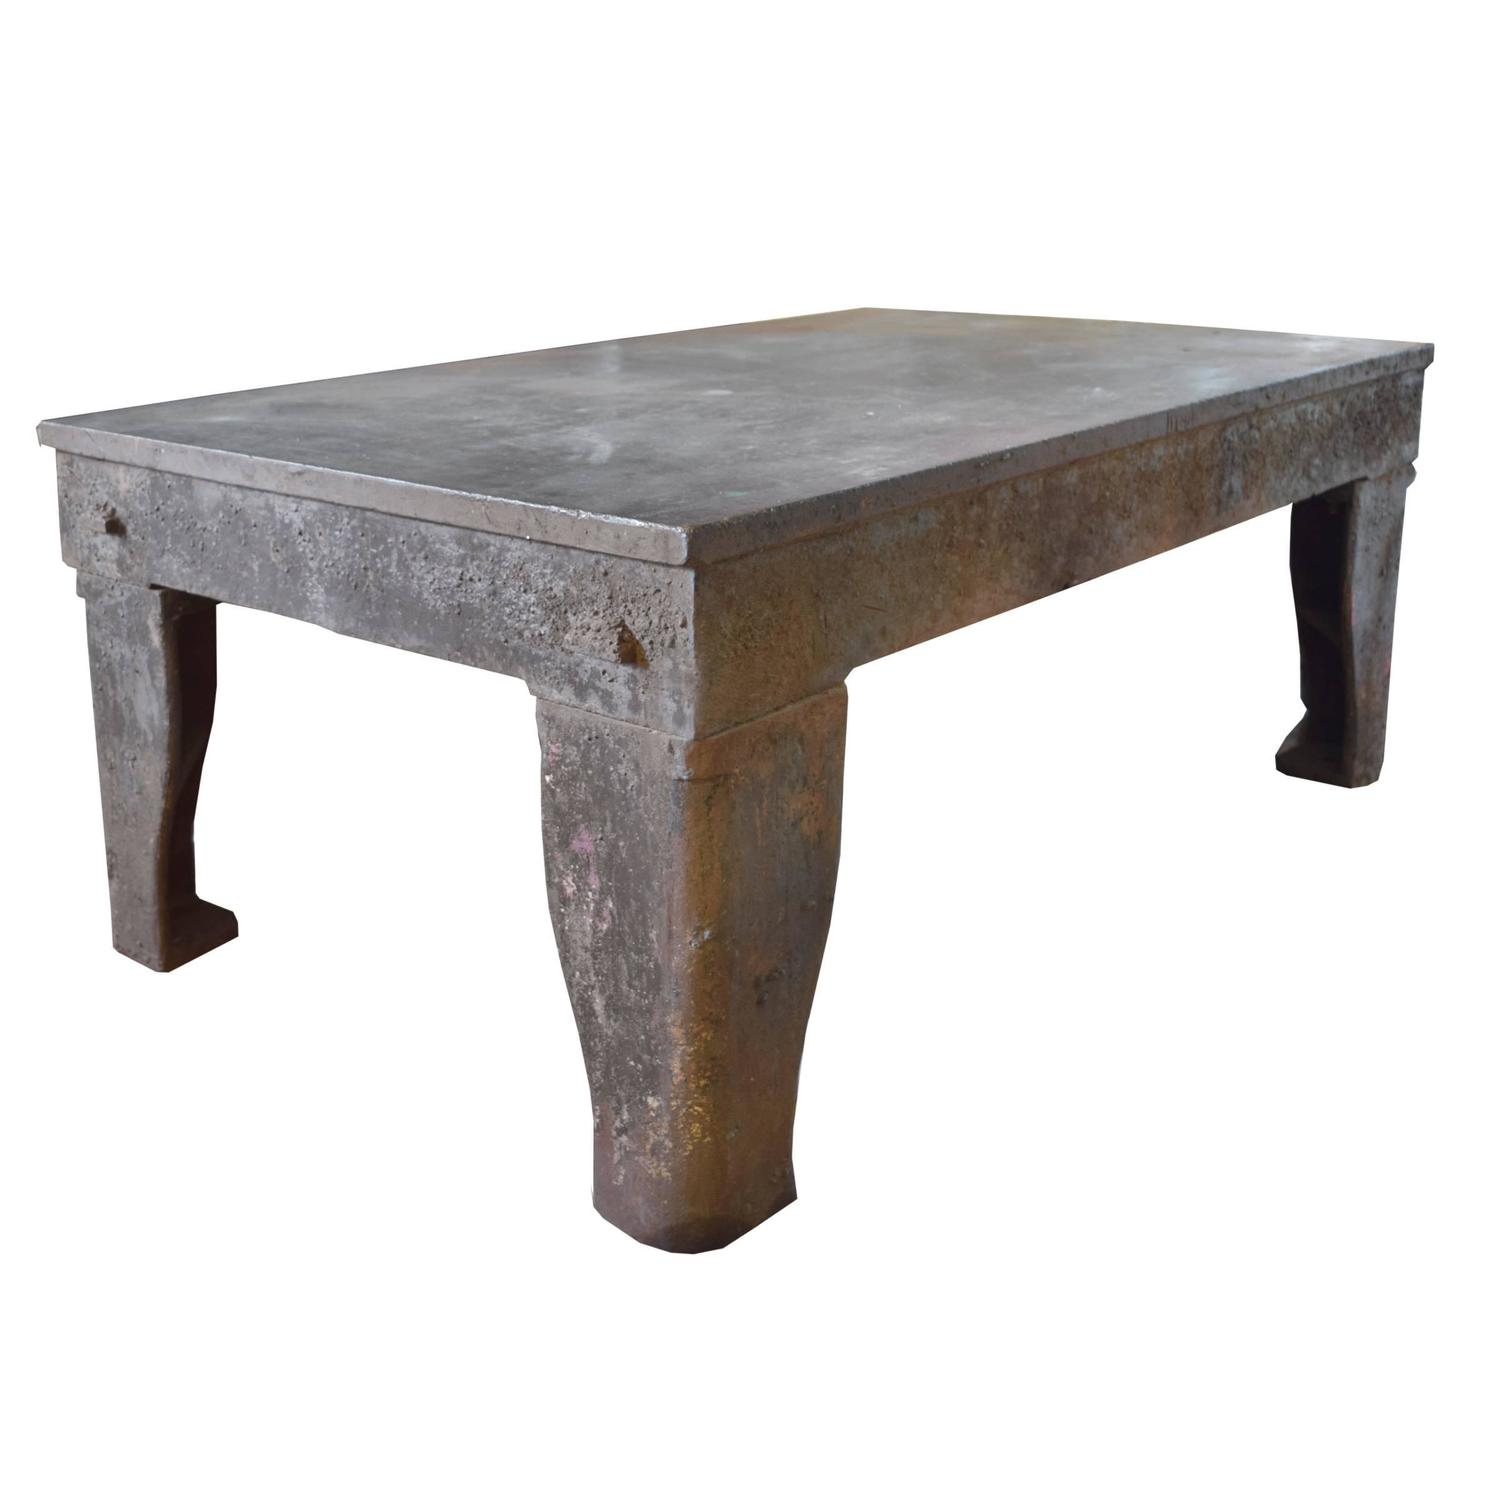 English industrial welding table for sale at 1stdibs